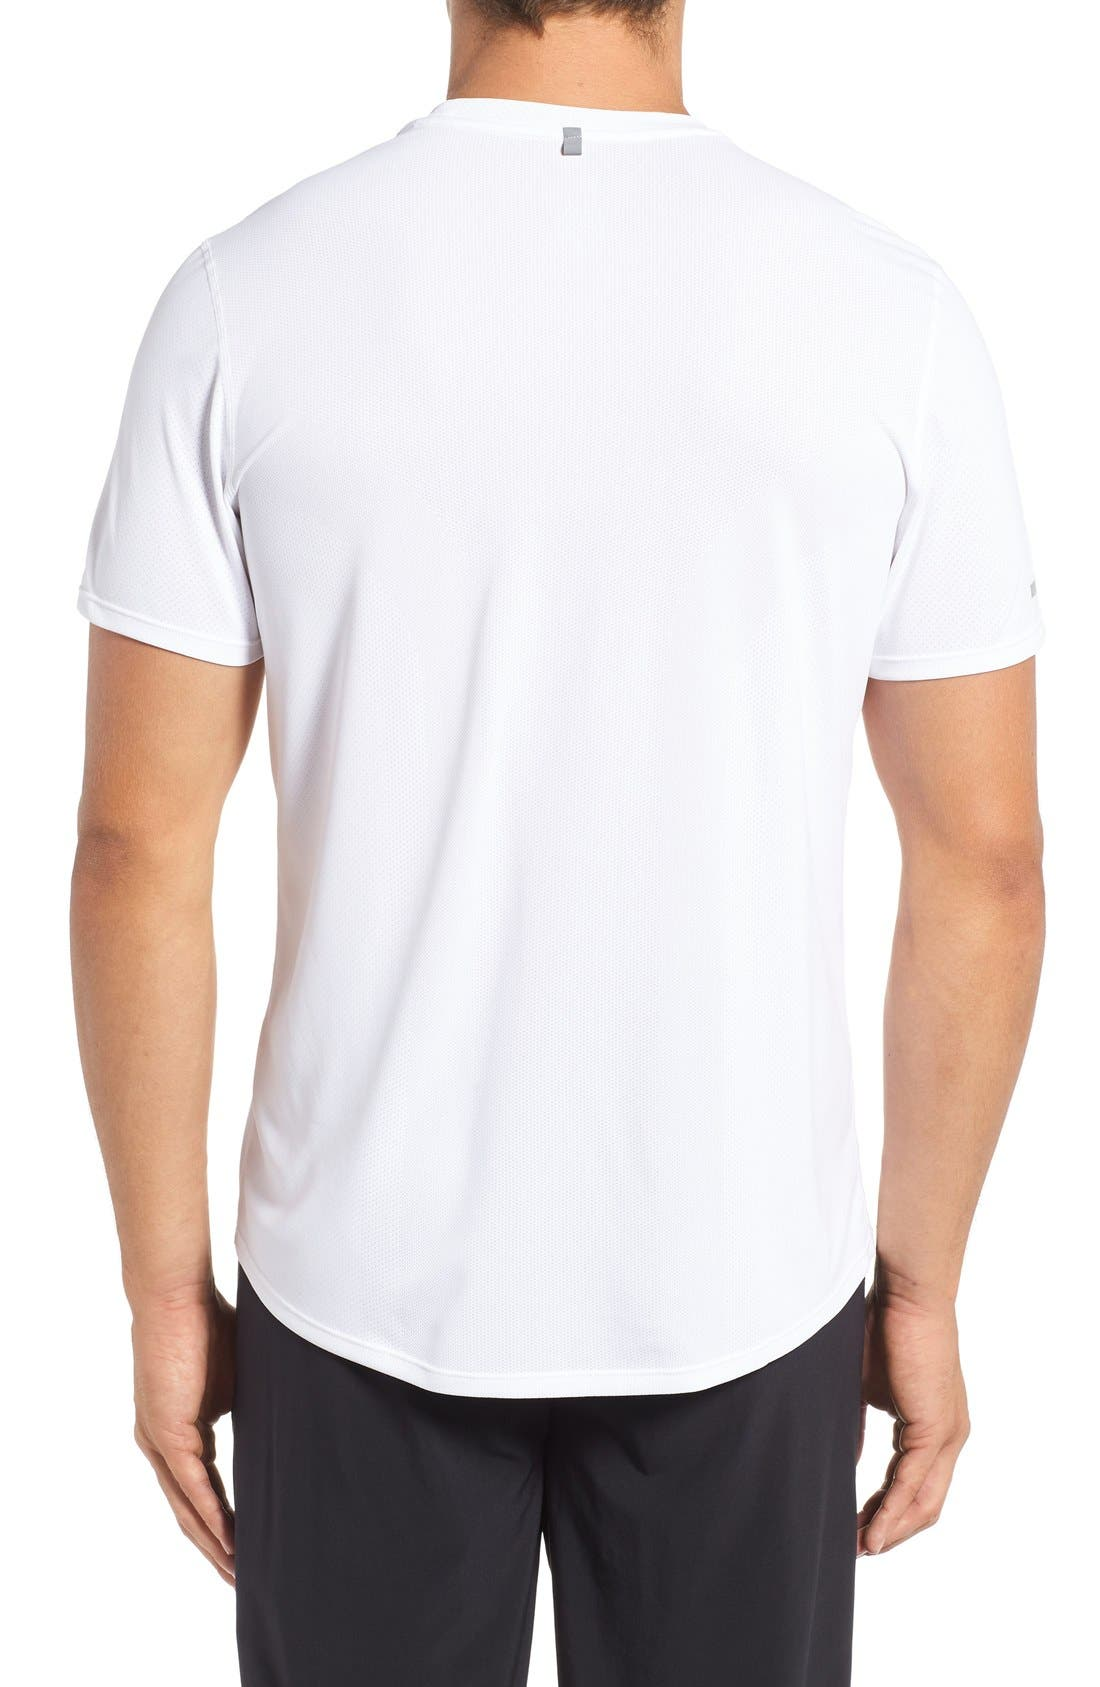 'Contour' Mesh Dri-FIT Running T-Shirt,                             Alternate thumbnail 9, color,